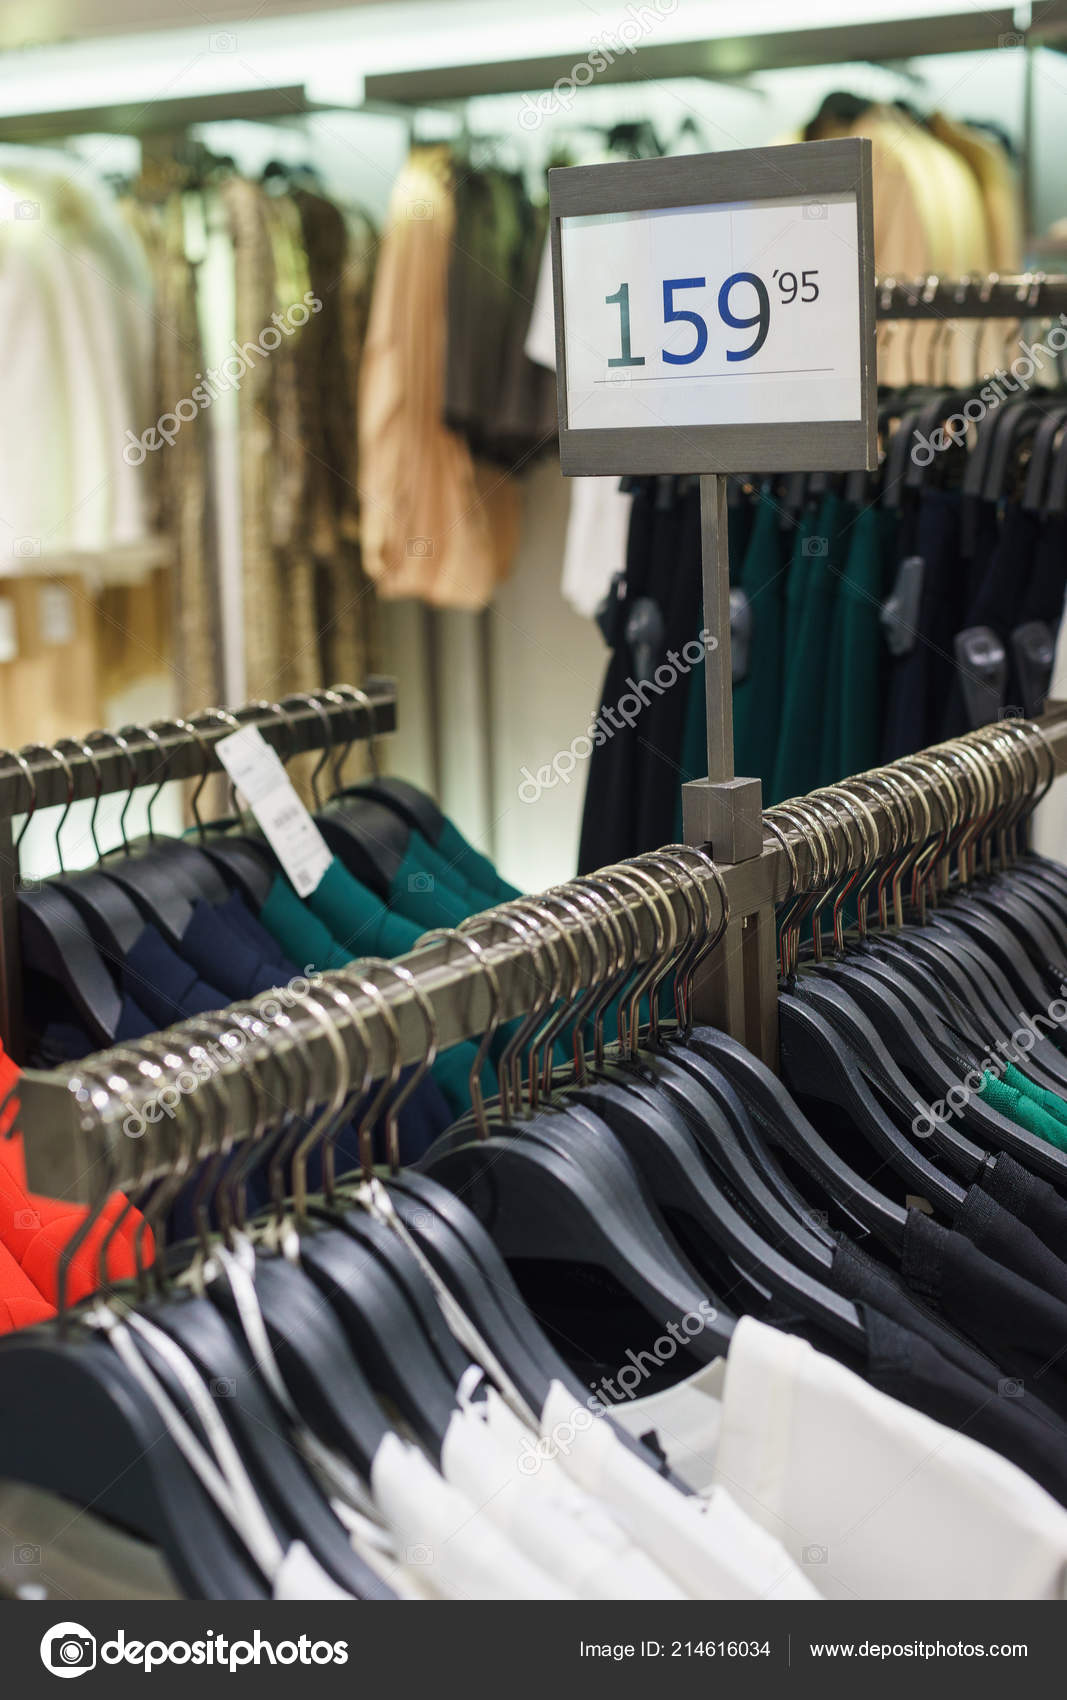 59ede4b96 Fashionable men's and women's clothing on wooden hangers in a modern clothing  store. Stylish clothes for girls and women. Sale and shopping in stores.